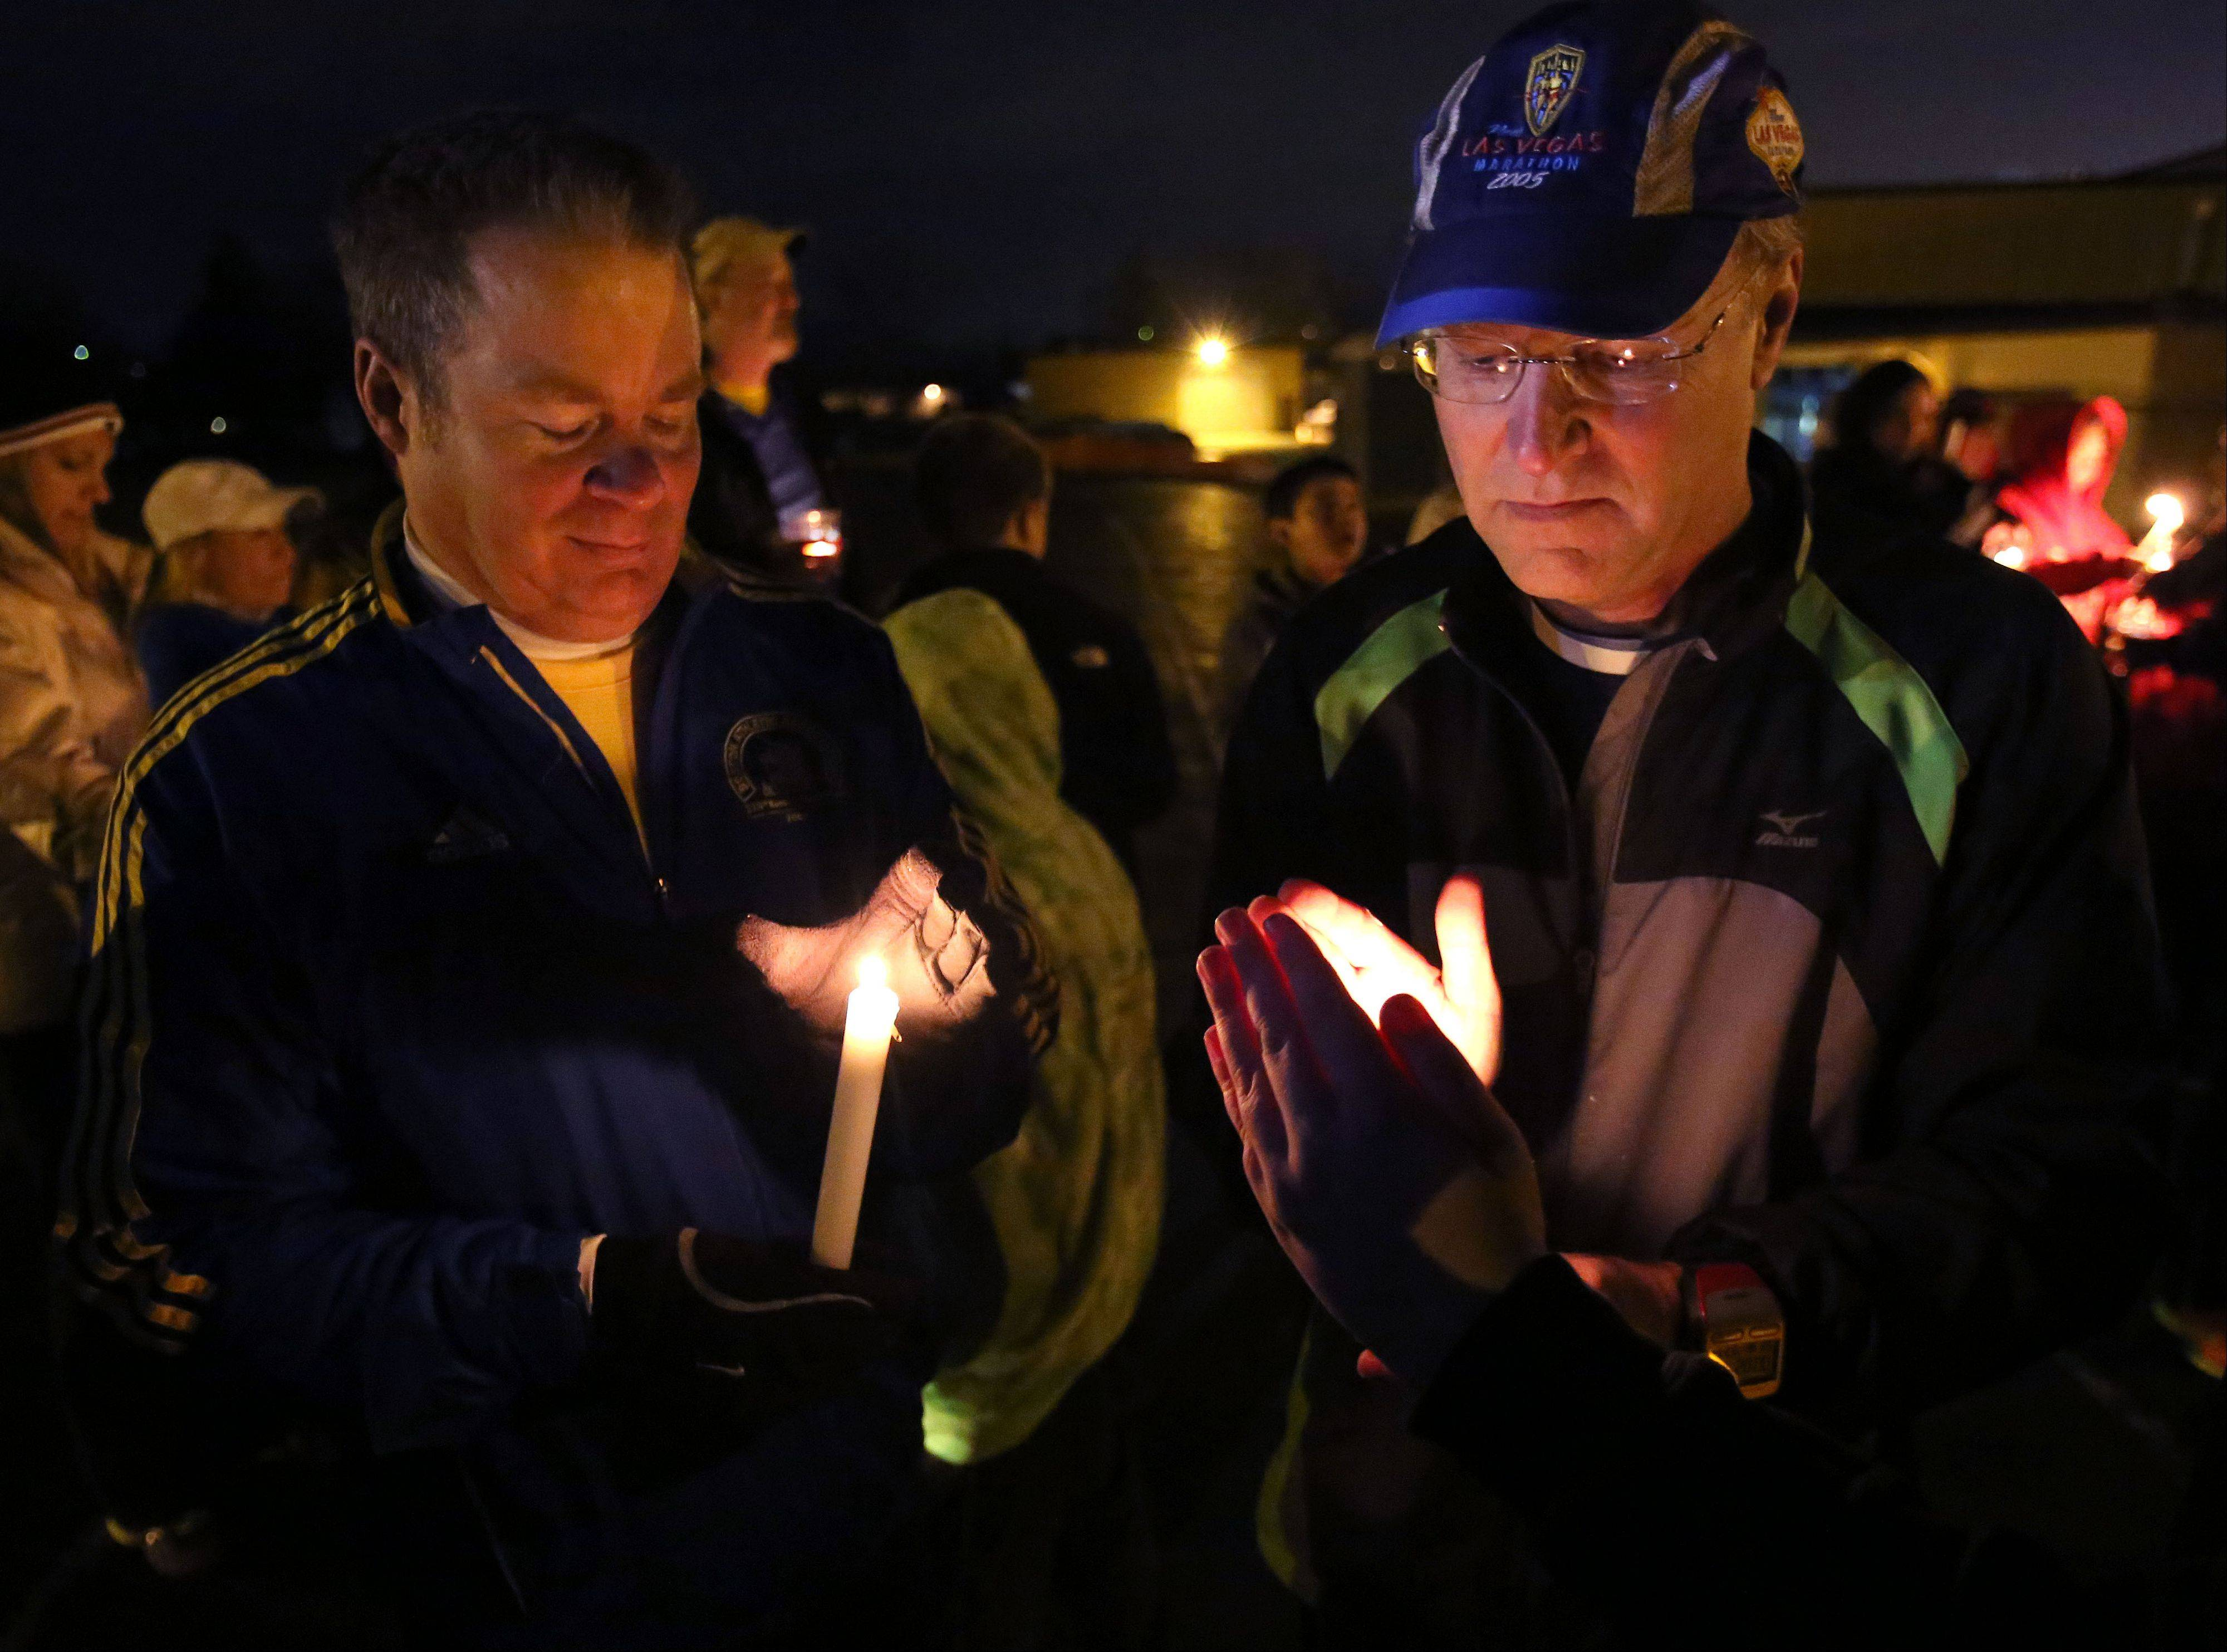 Don Gill and Craig Wiemer, both of Palatine, light candles as members of the Hoffman Estates, Inverness and Palatine, or HIP Athletic Association hold a memorial run on the track at the old Palatine High School for the victims of the Boston Marathon bombings.